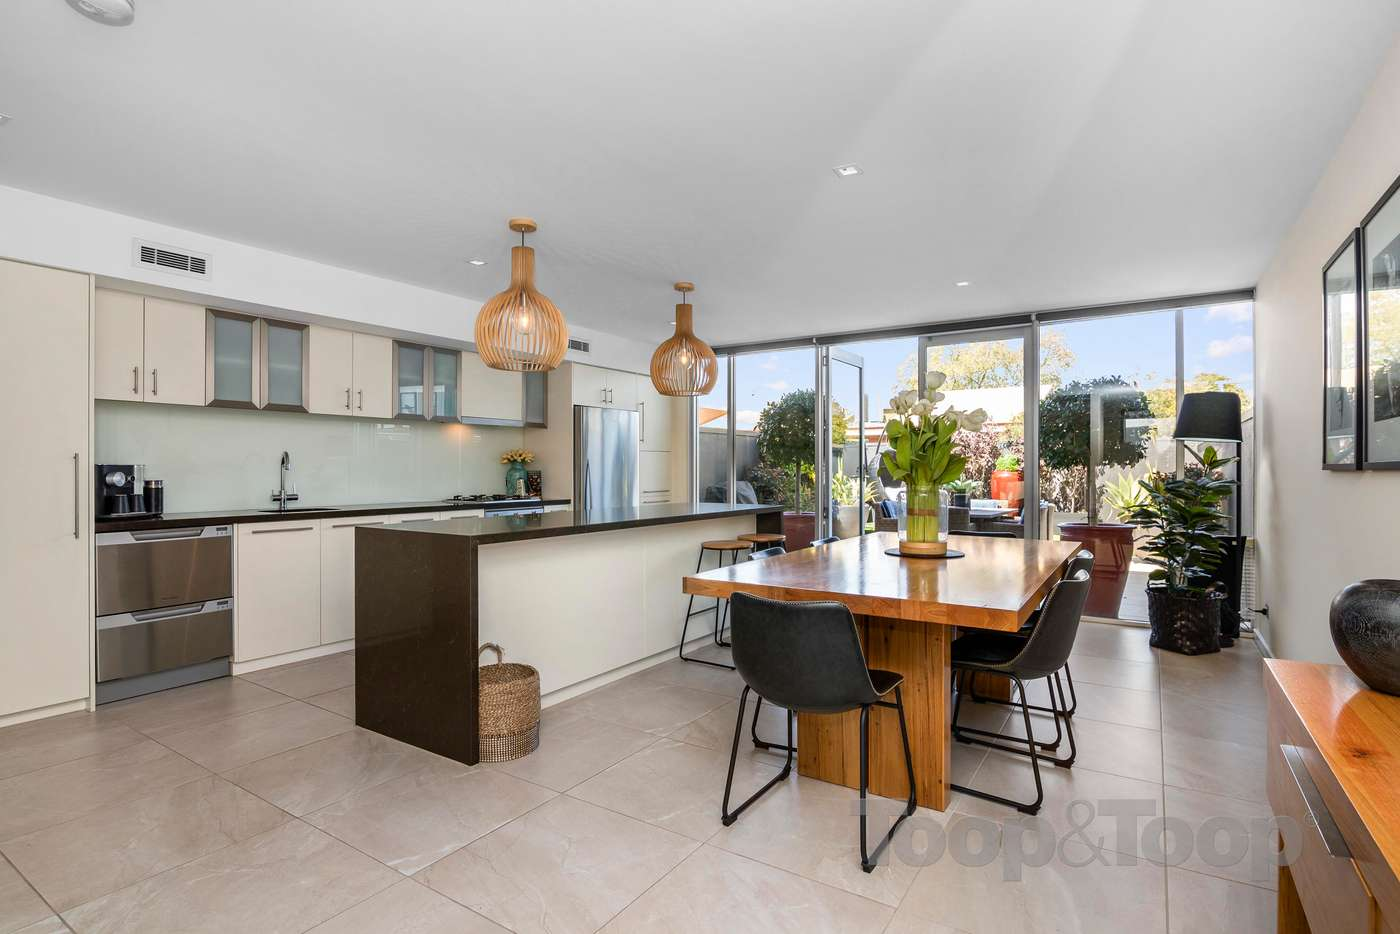 Fifth view of Homely house listing, 7/3 Runge Place, Norwood SA 5067